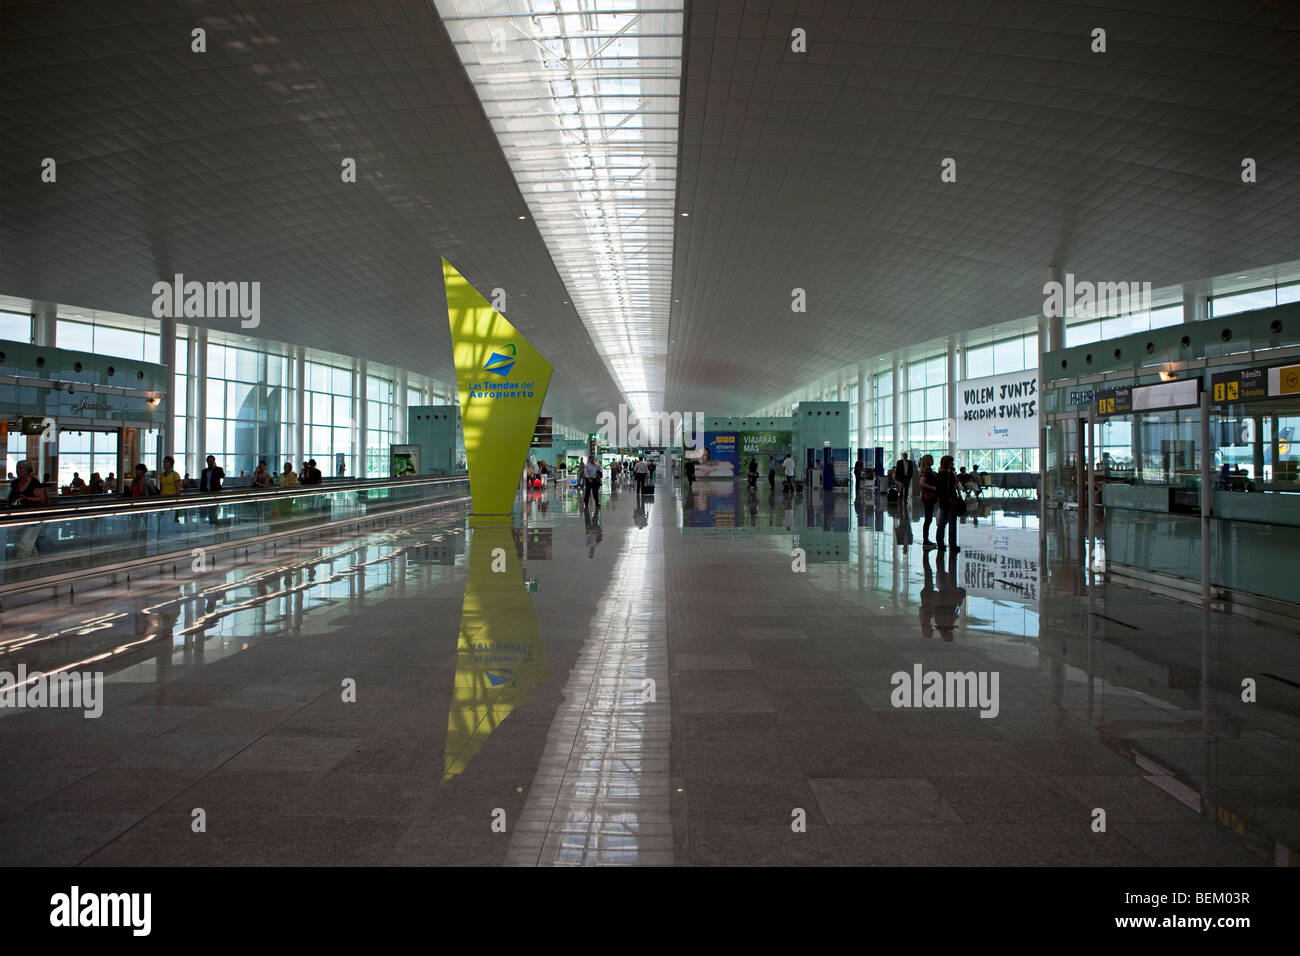 Barcelona airport terminal one - Stock Image